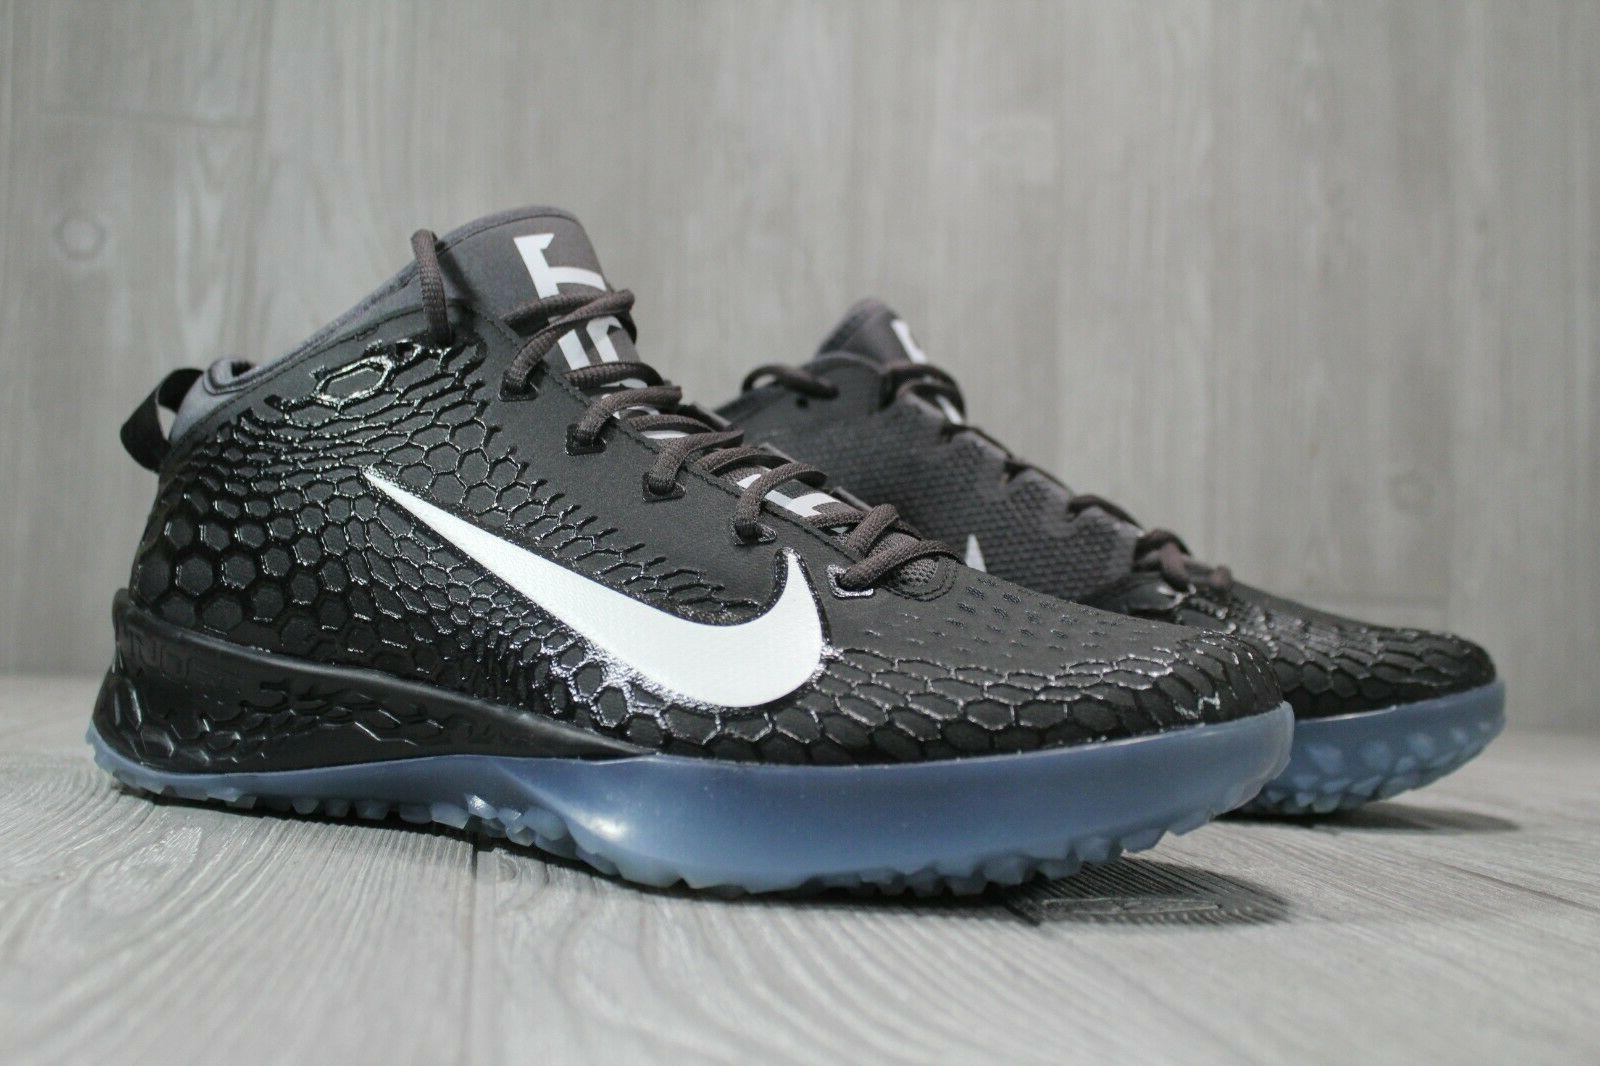 51 Nike Force Trout Turf Cleats AH3374-014 11.5